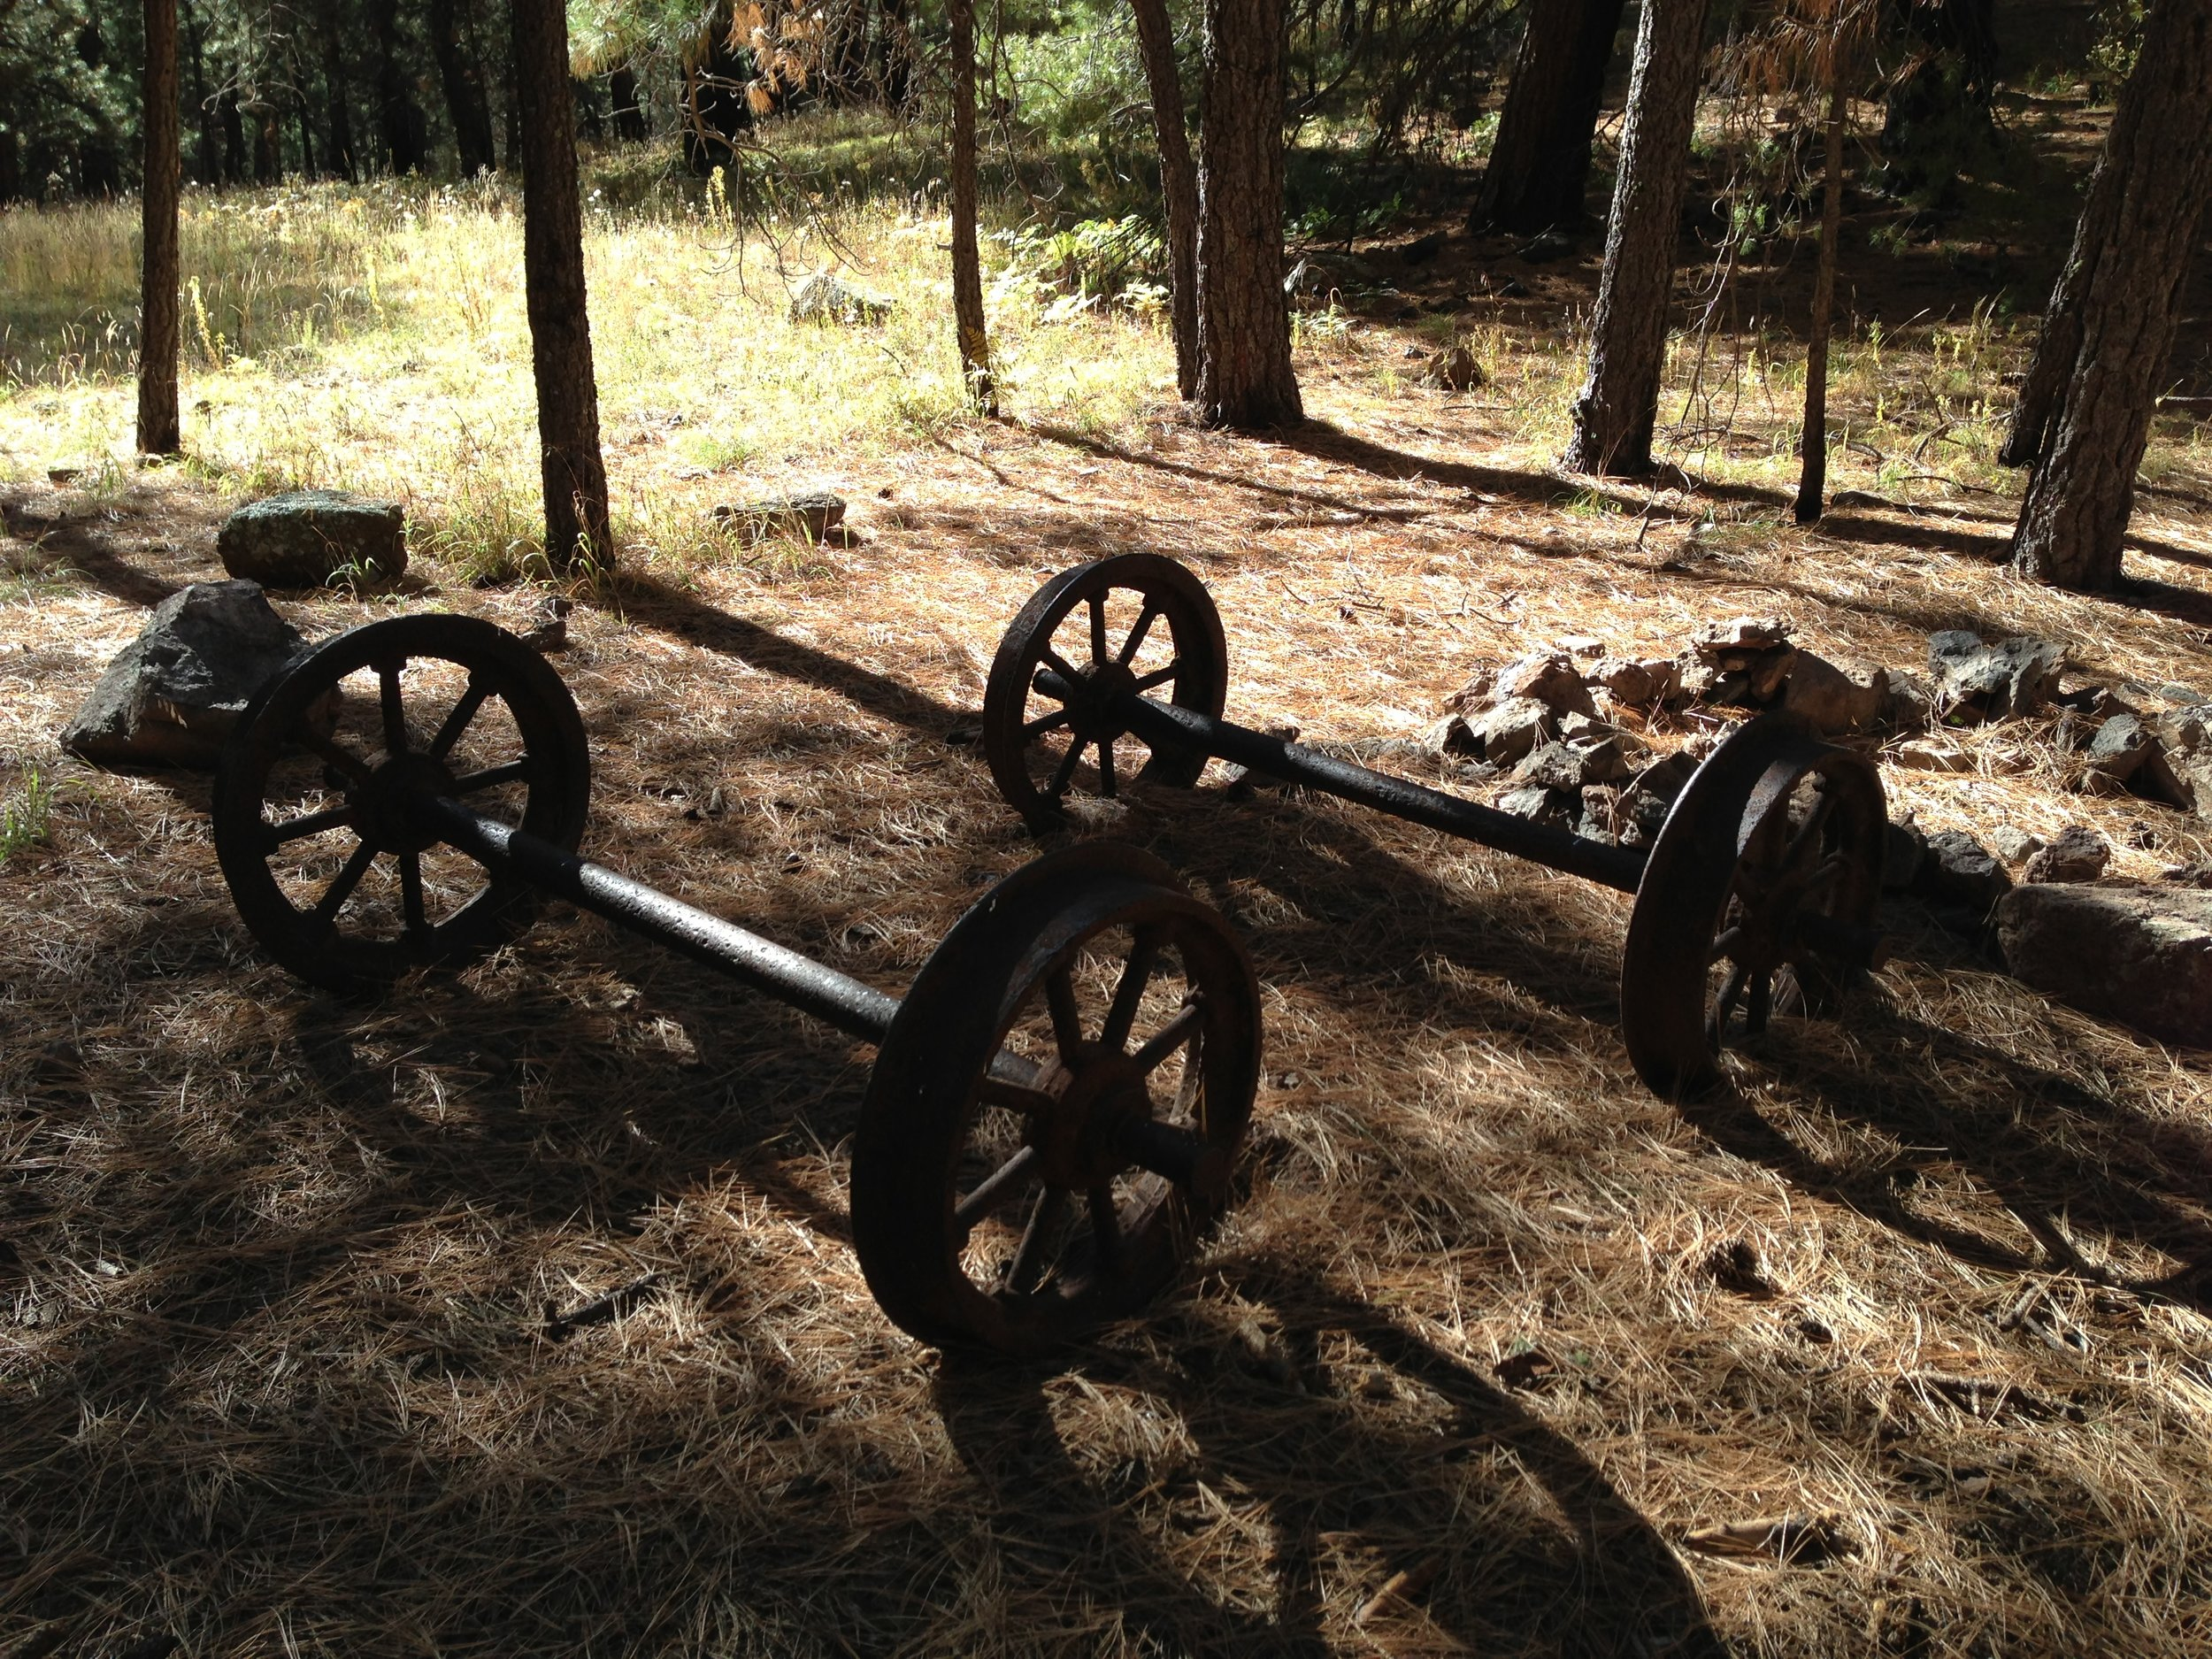 PHOTOGRAPH TAKEN IN SEPTEMBER 2012 OF THE REMAINING PIECES OF EQUIPMENT AT THE SAWMILL